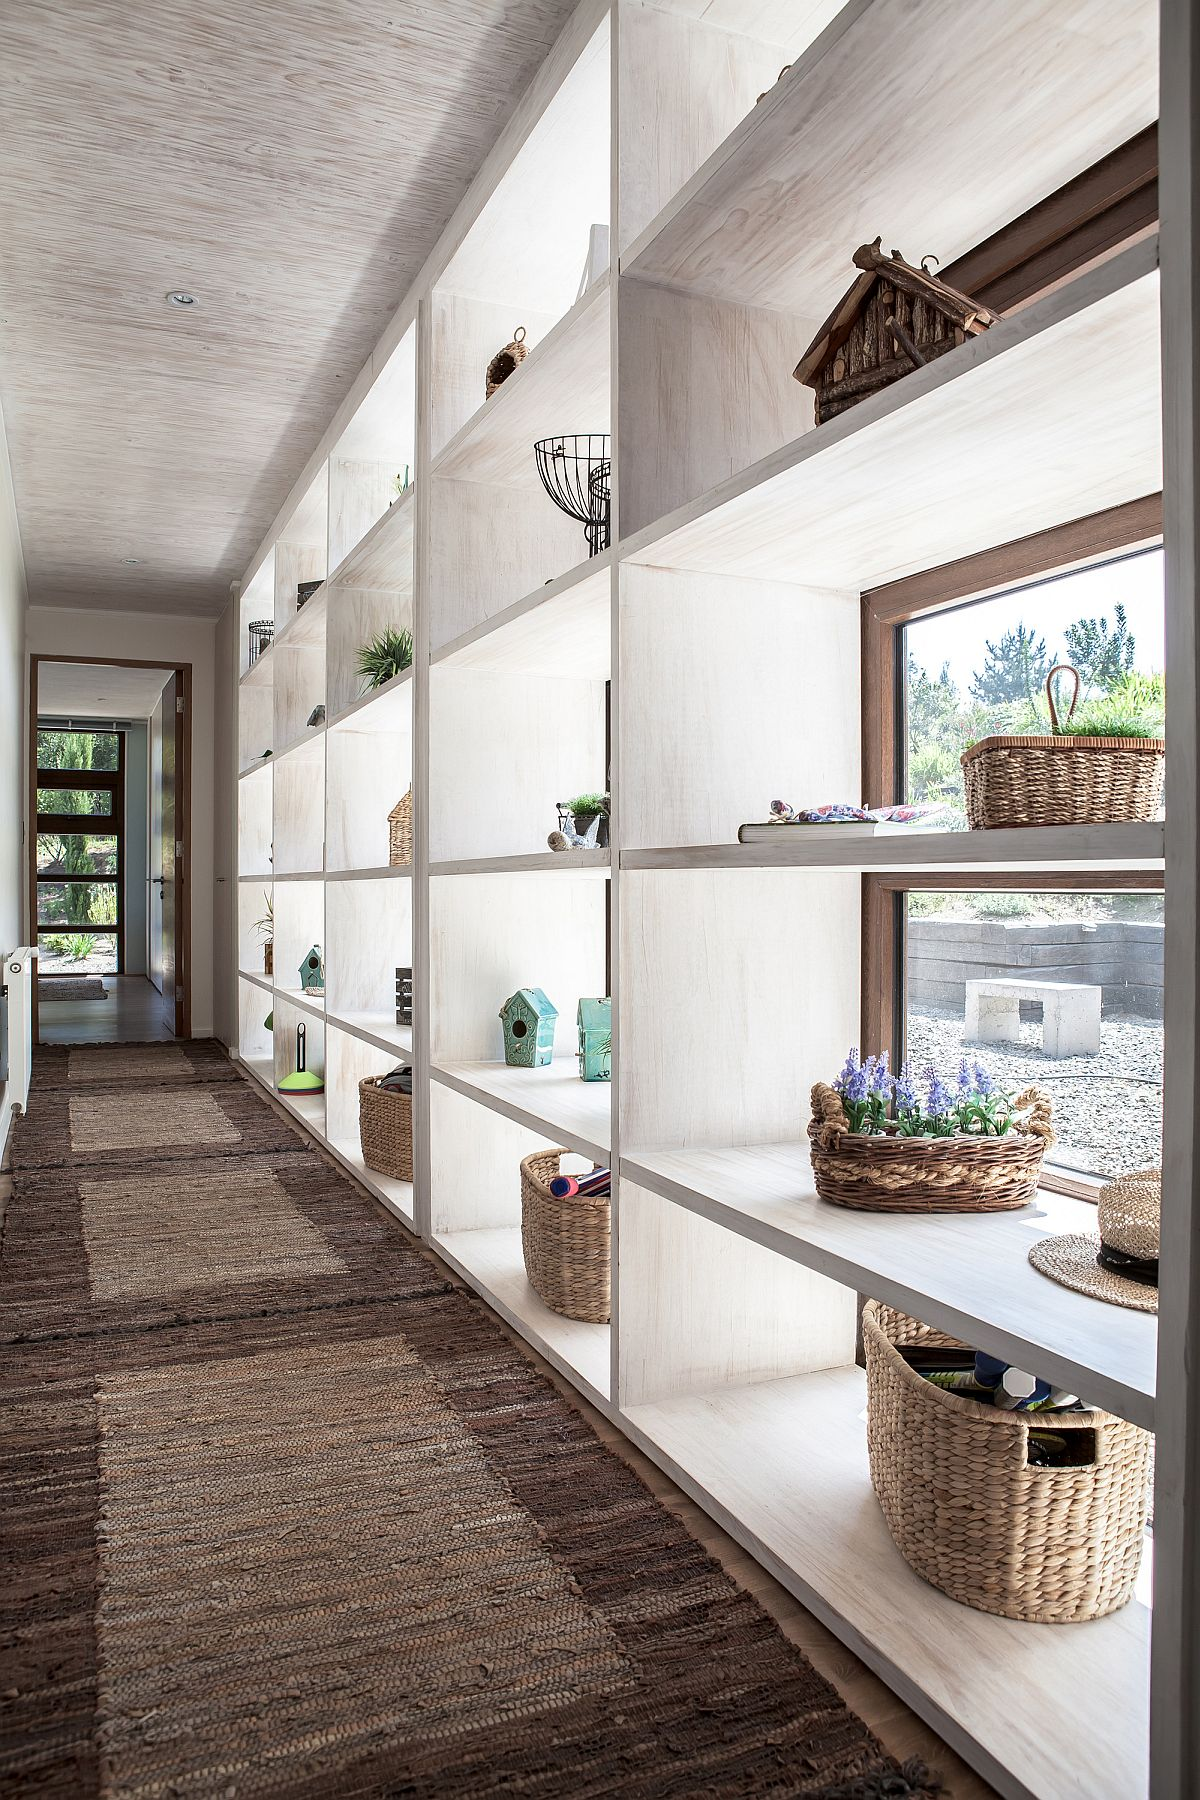 Open shelves offer ample display space in the hallway